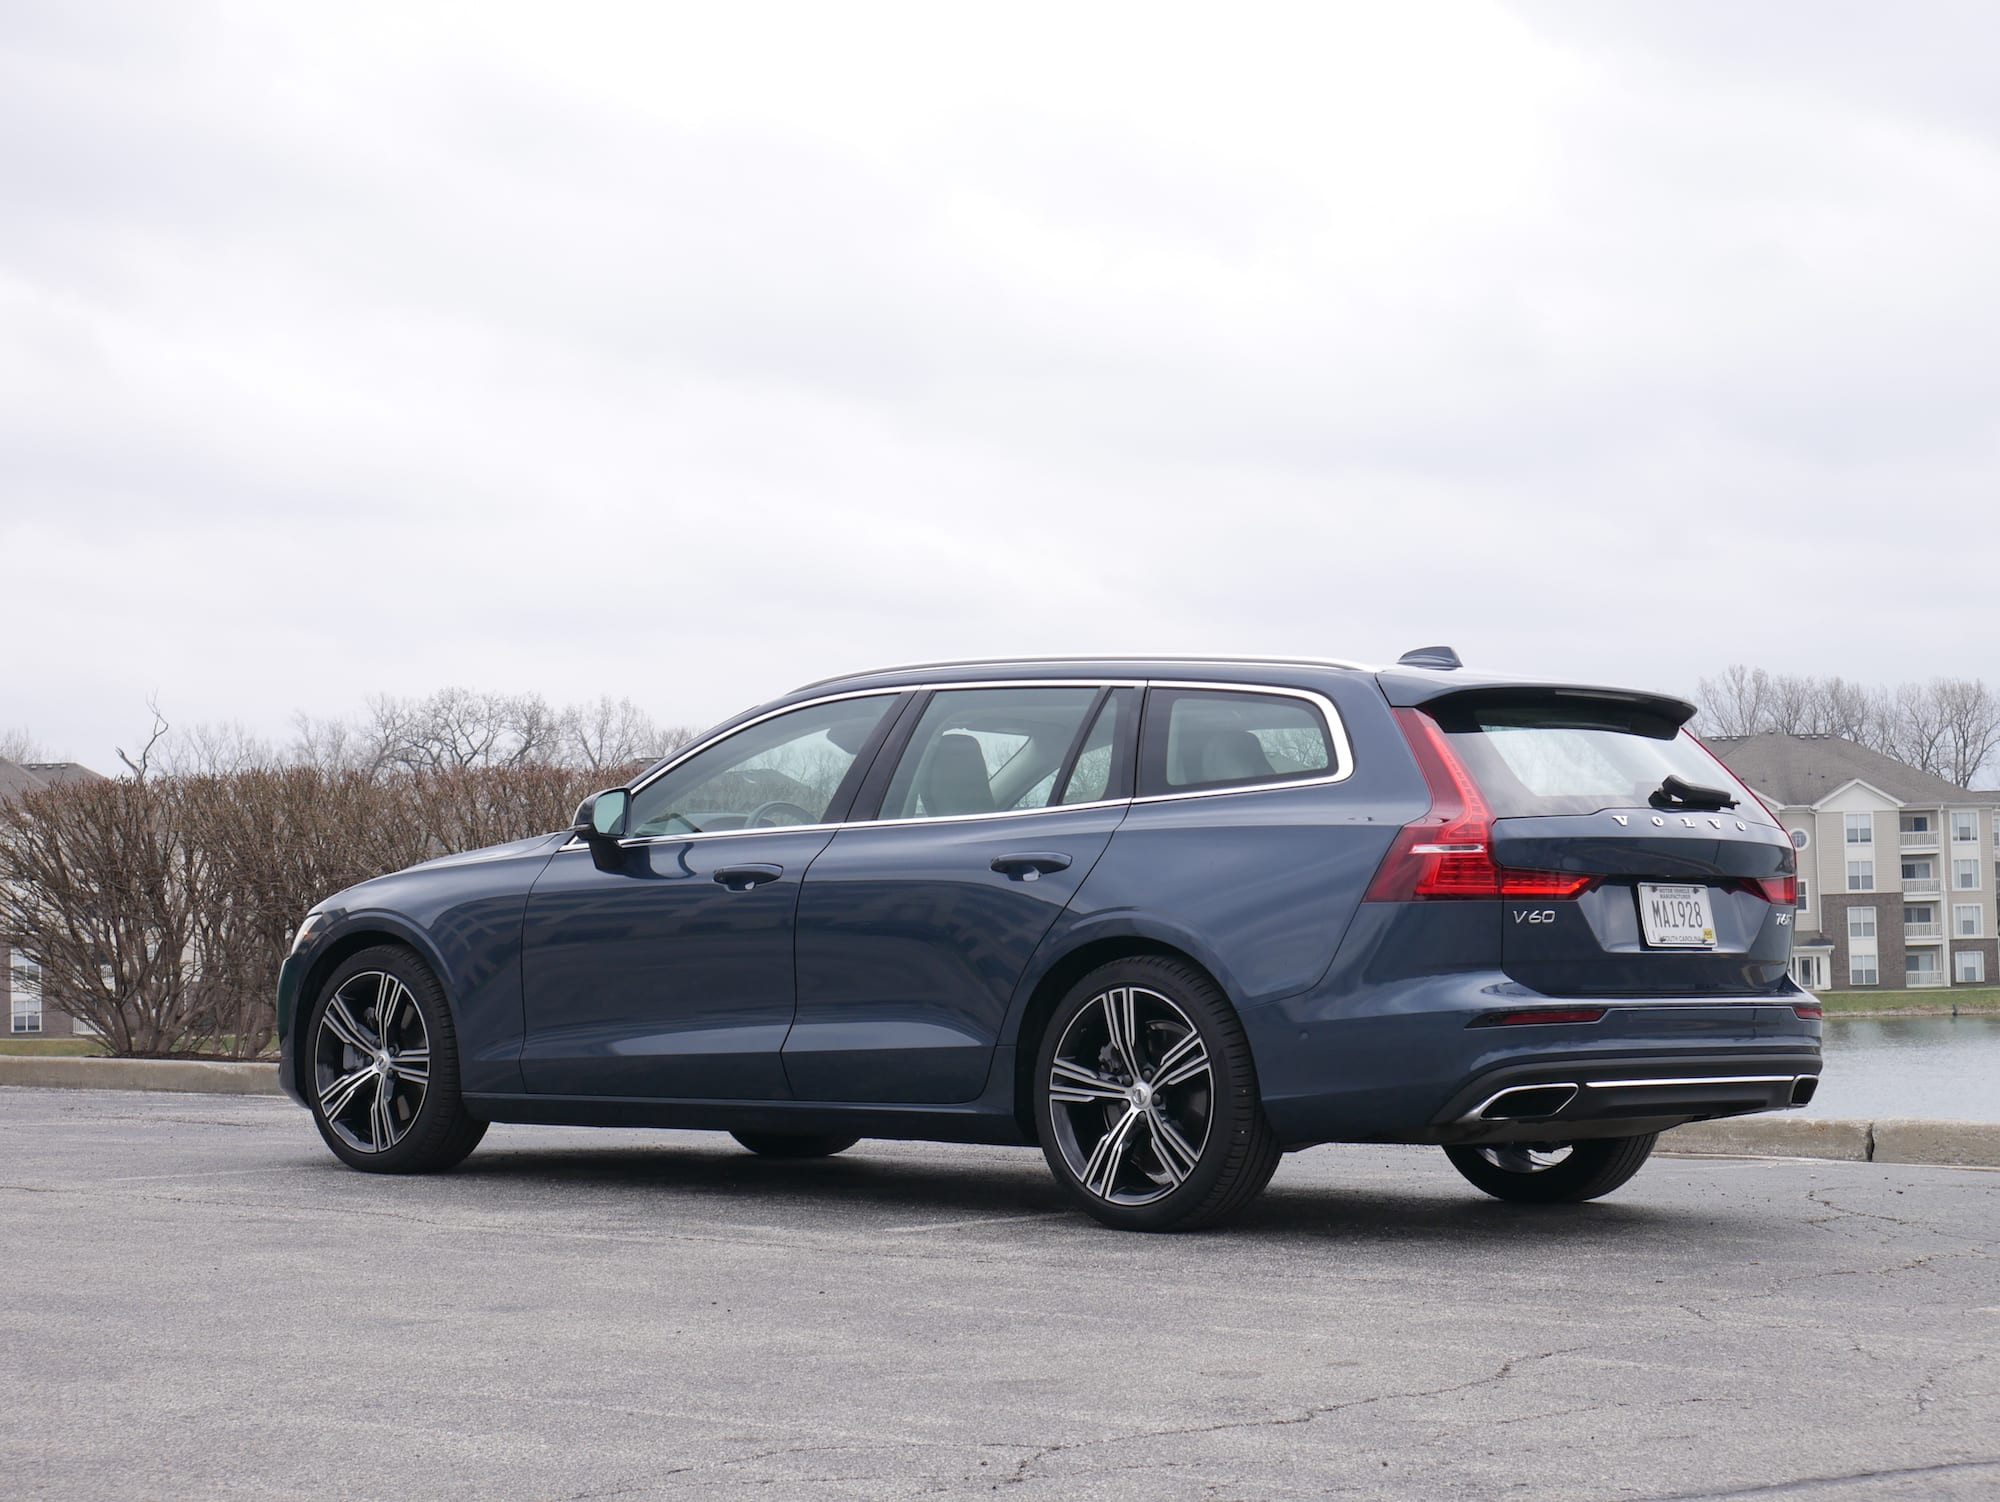 2019 Volvo V60 T6 Inscription rear three-quarter view